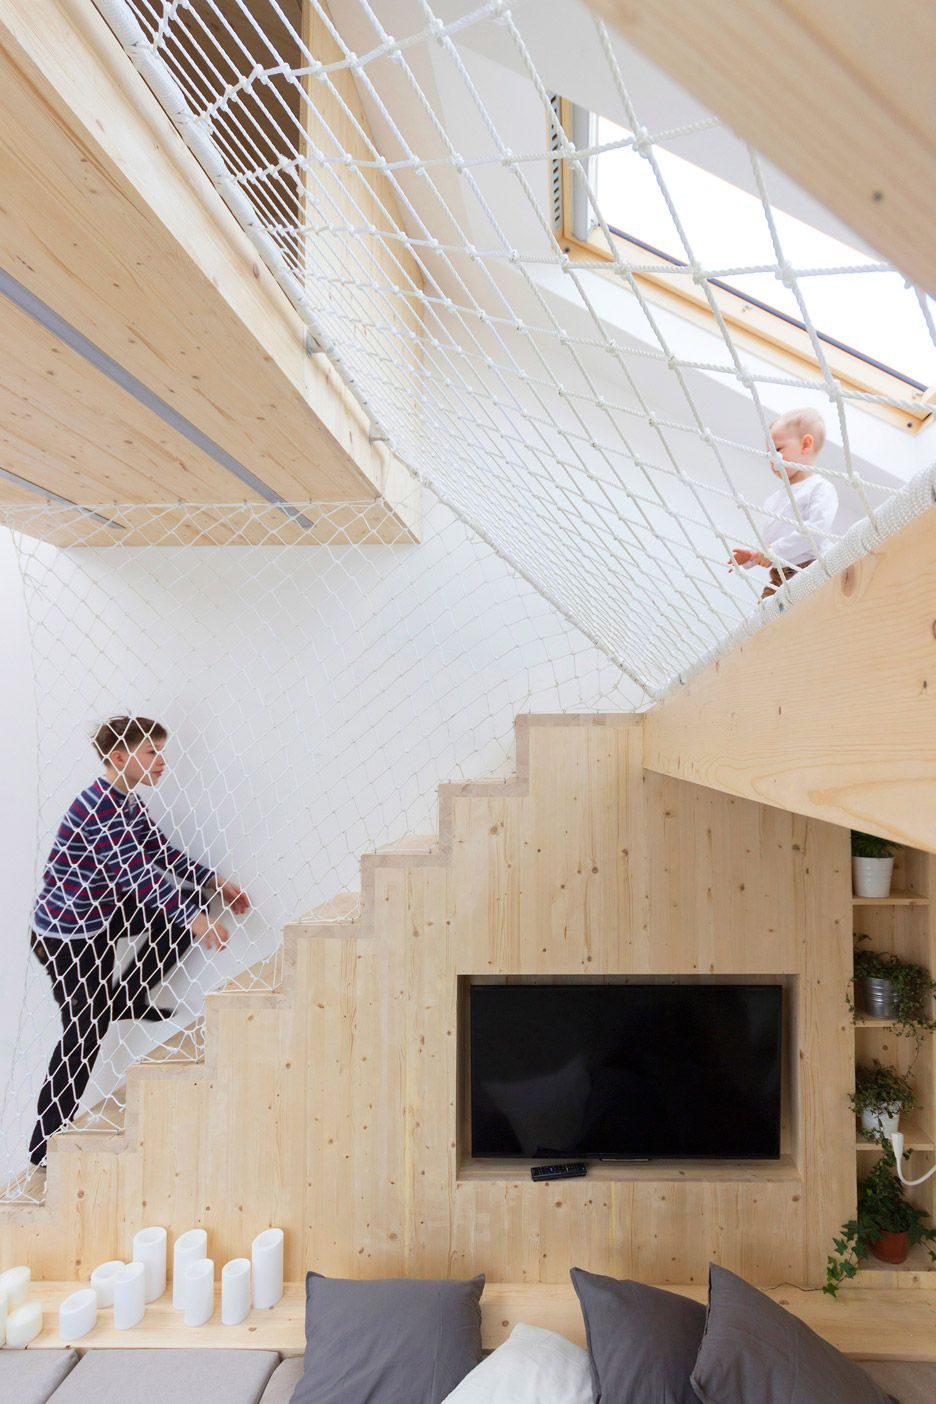 Ruetemple adds childrenus playhouse to russian house playhouses